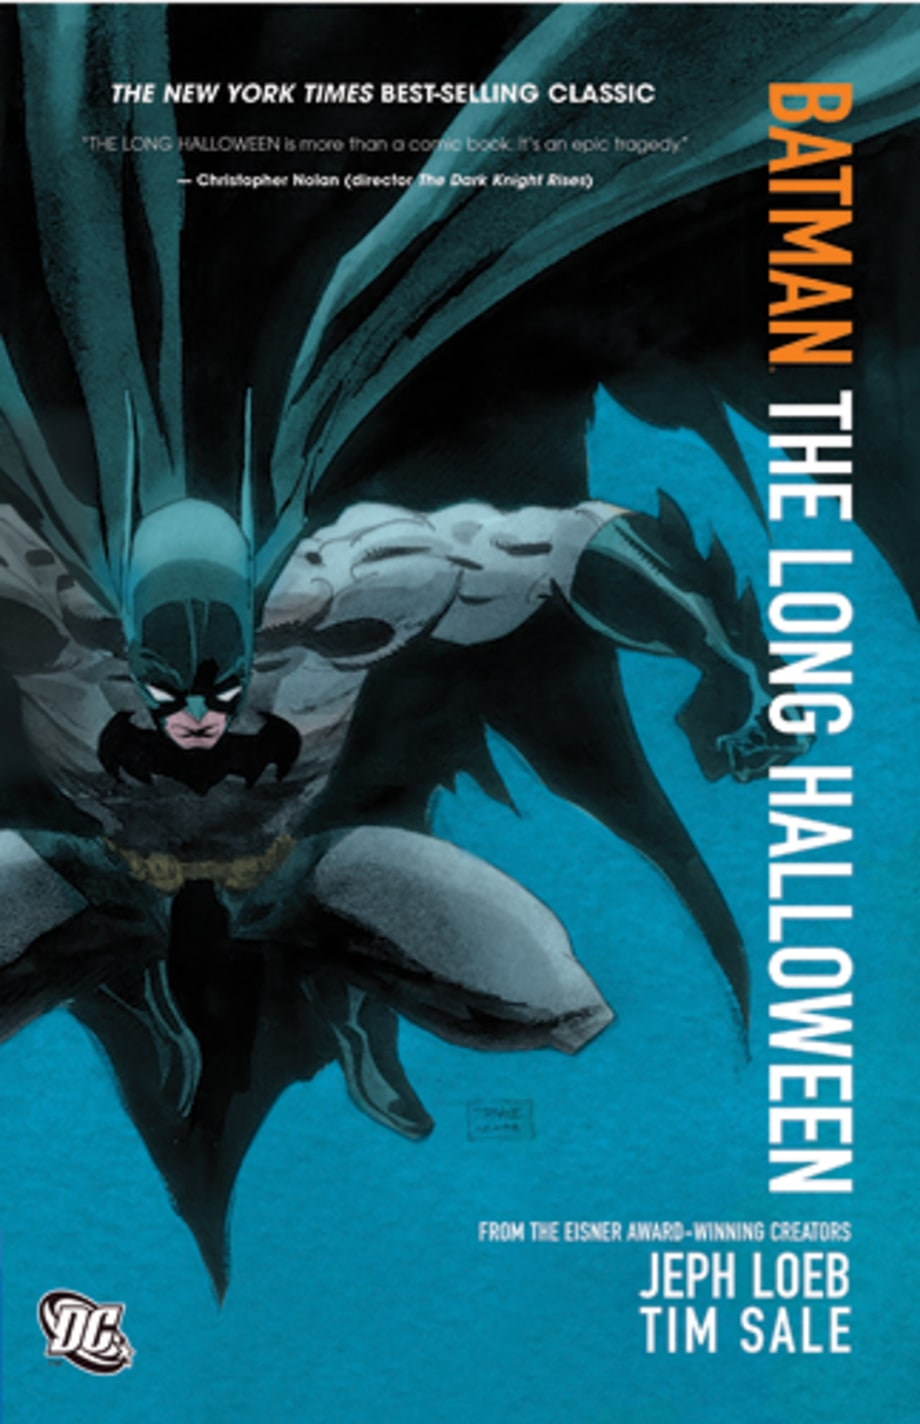 9. 'Batman: The Long Halloween'